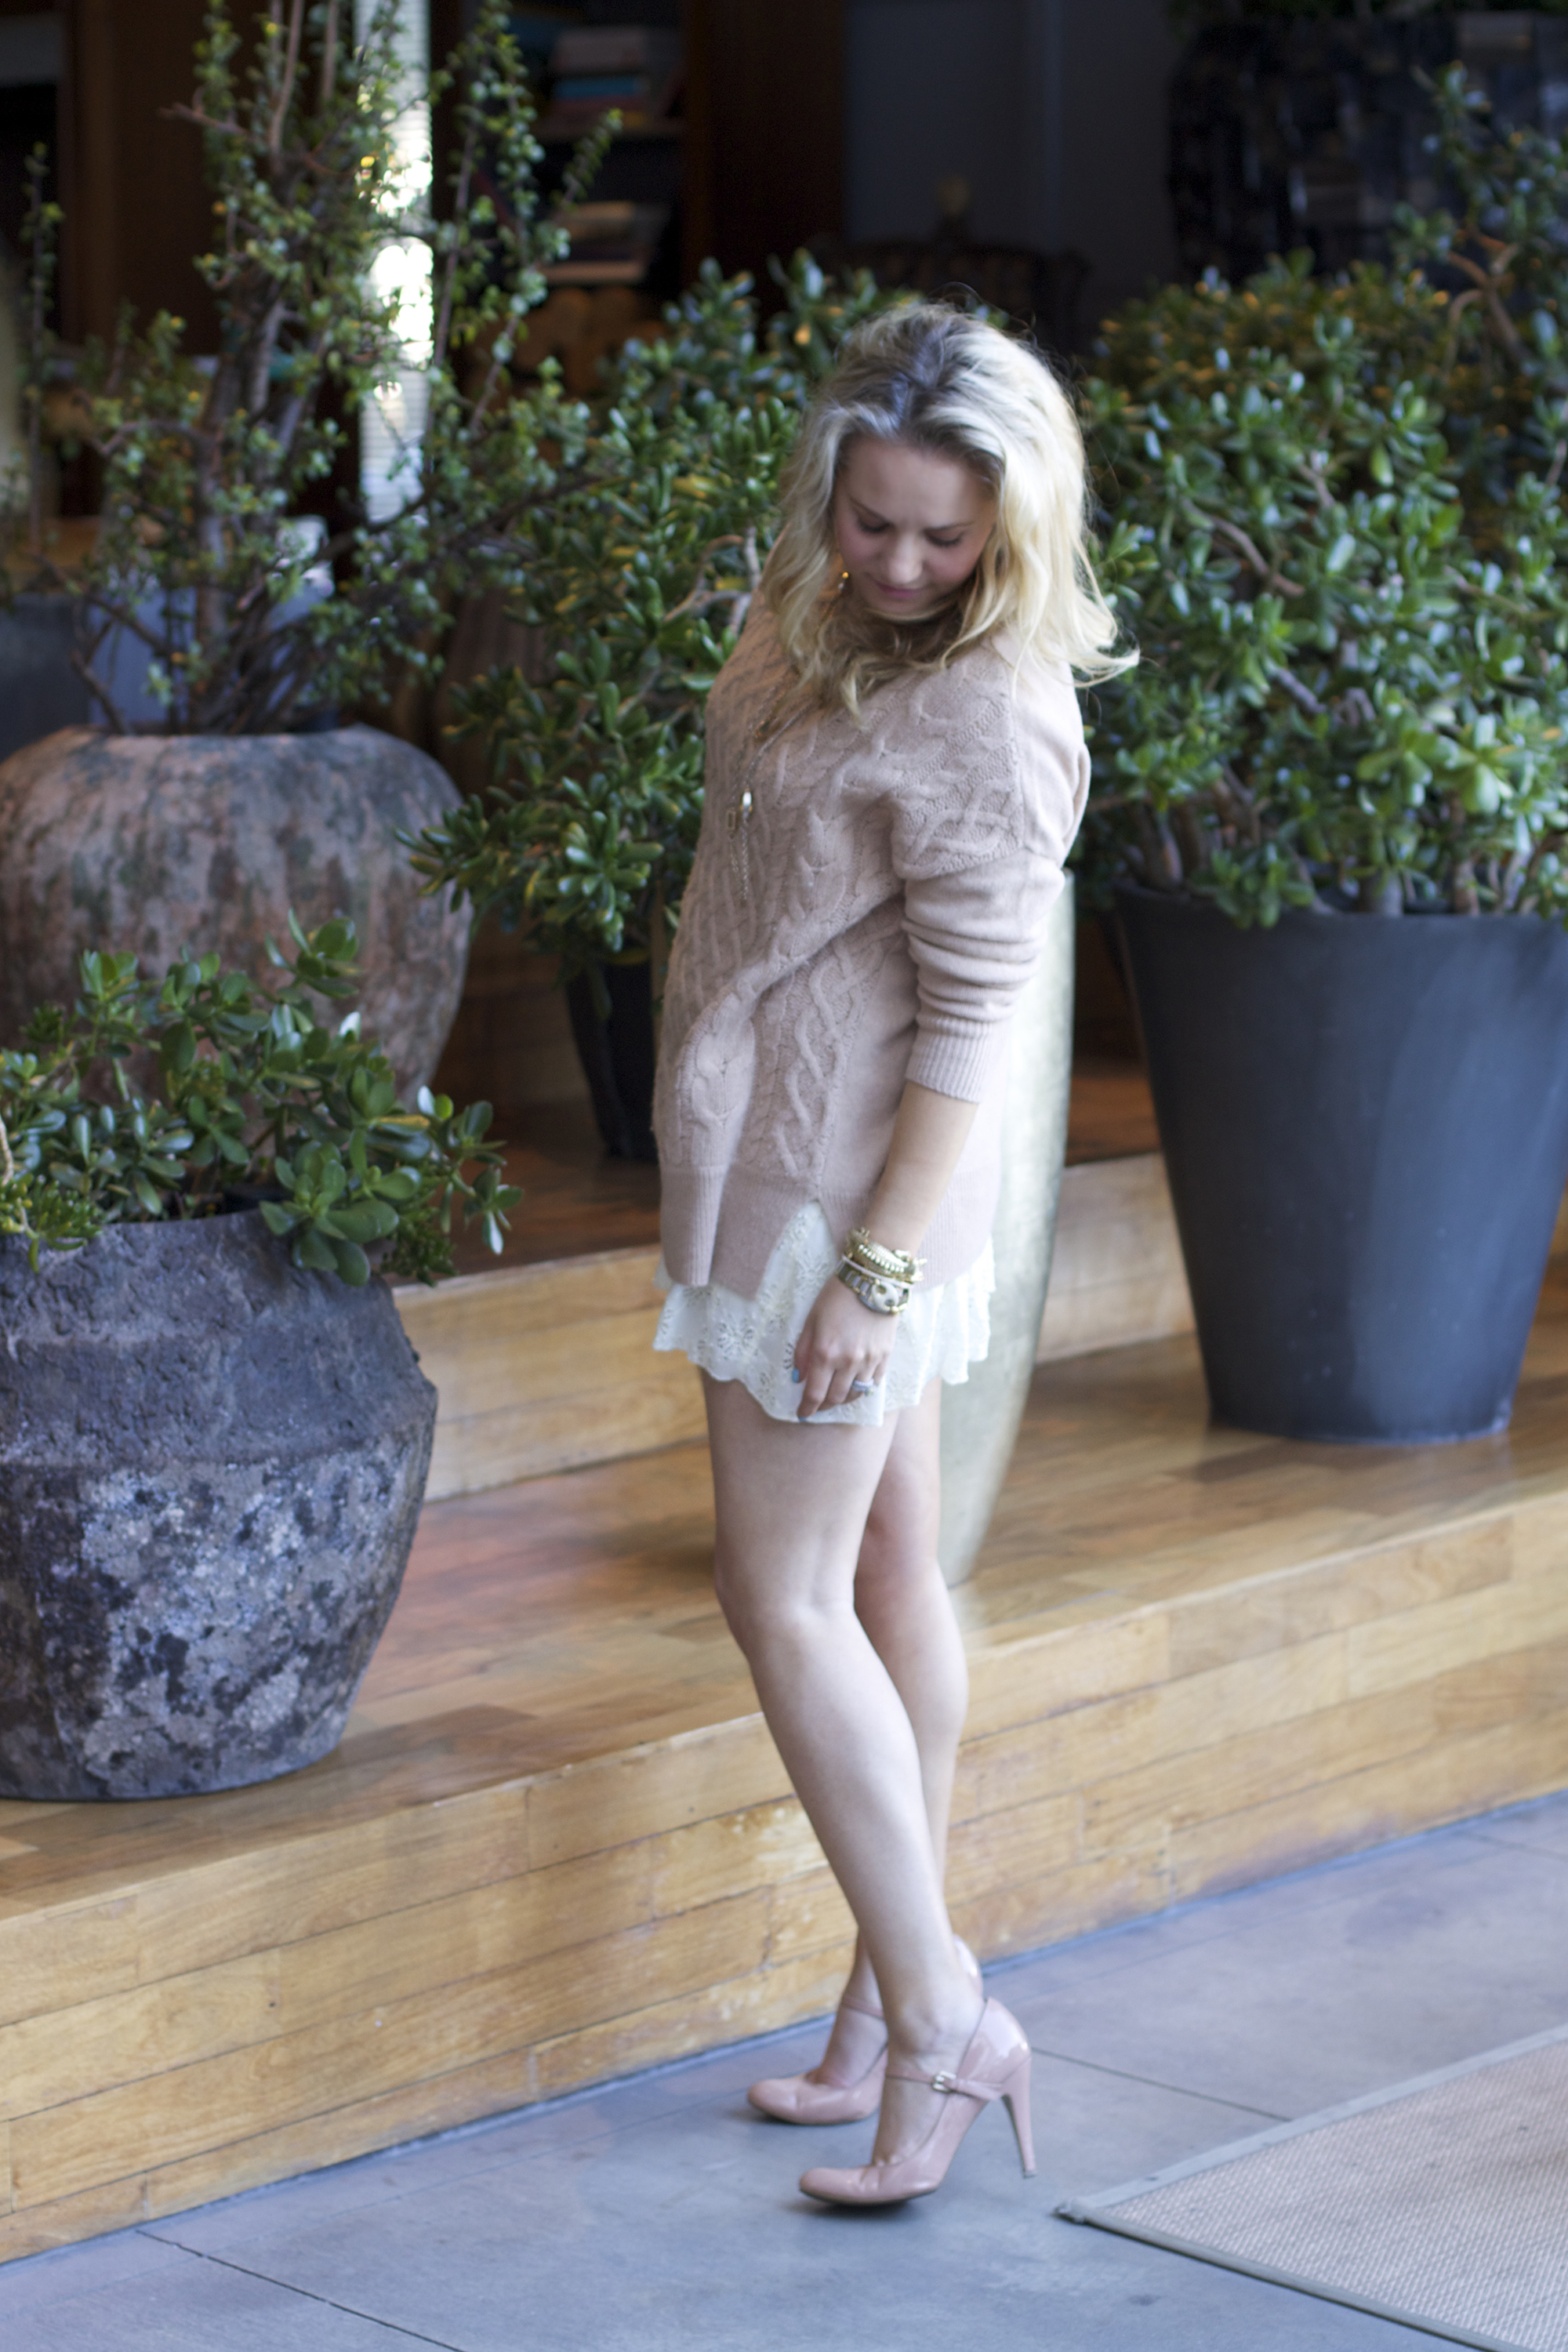 LuckyFABB, Joie Sweater, Free People Lace Dress, Nine West Shoes, How to layer, Neutral outfit ideas, Fashion blogger, Spring fashion, Spring outfit ideas, outfit inspiration, Layering, Lace Dress, Cable knit sweaters, LuckyFABB conference, LuckyFABB west, Snake and Fawn